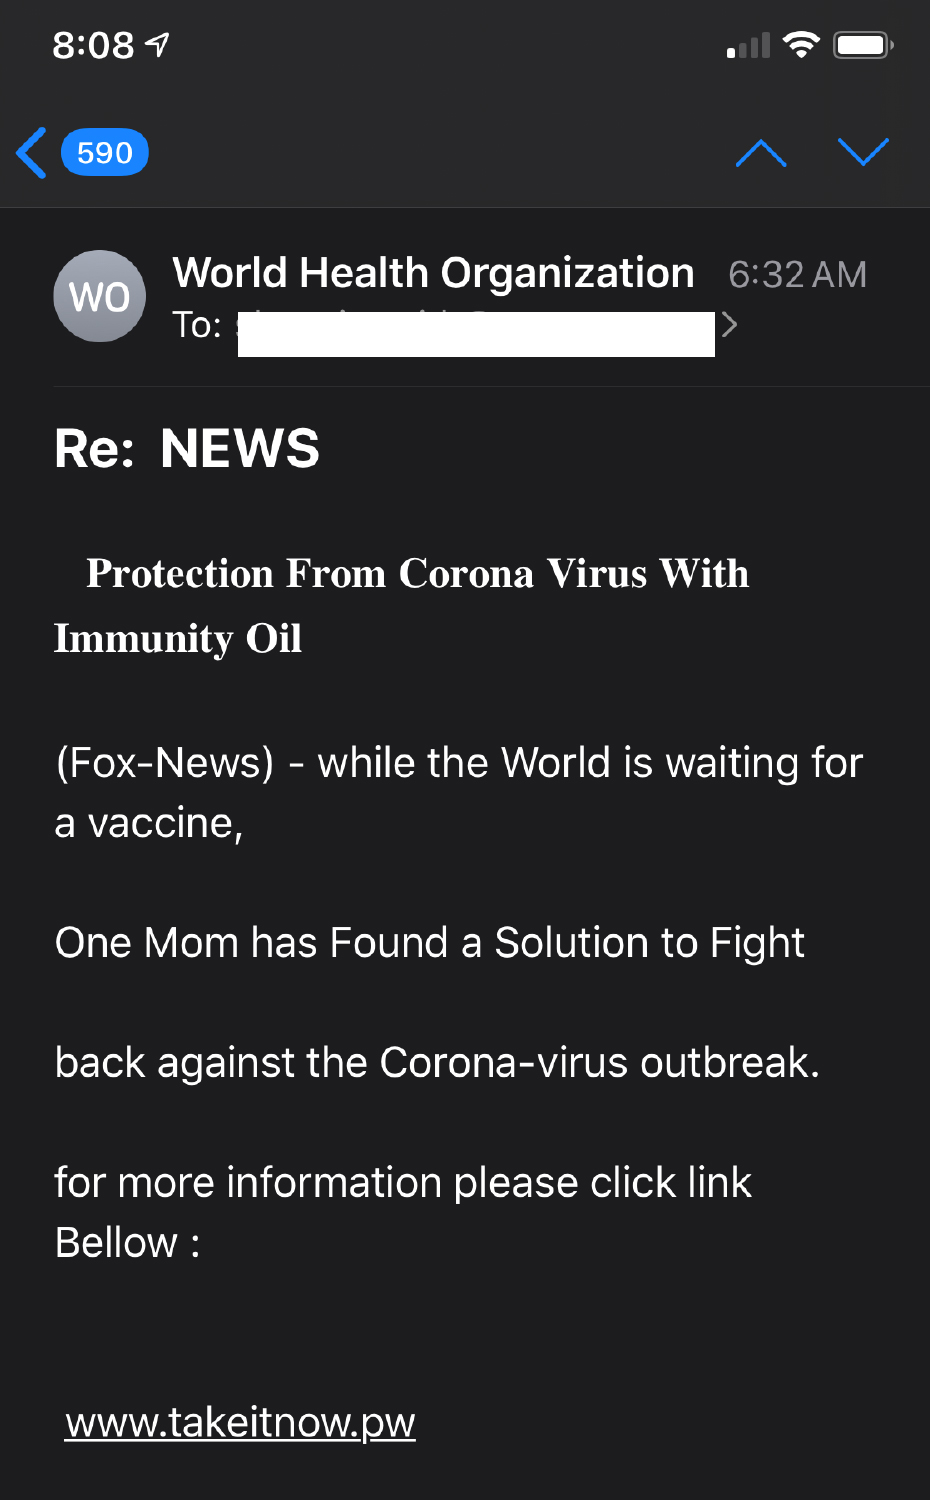 Image of scam email sent to Washingtonian